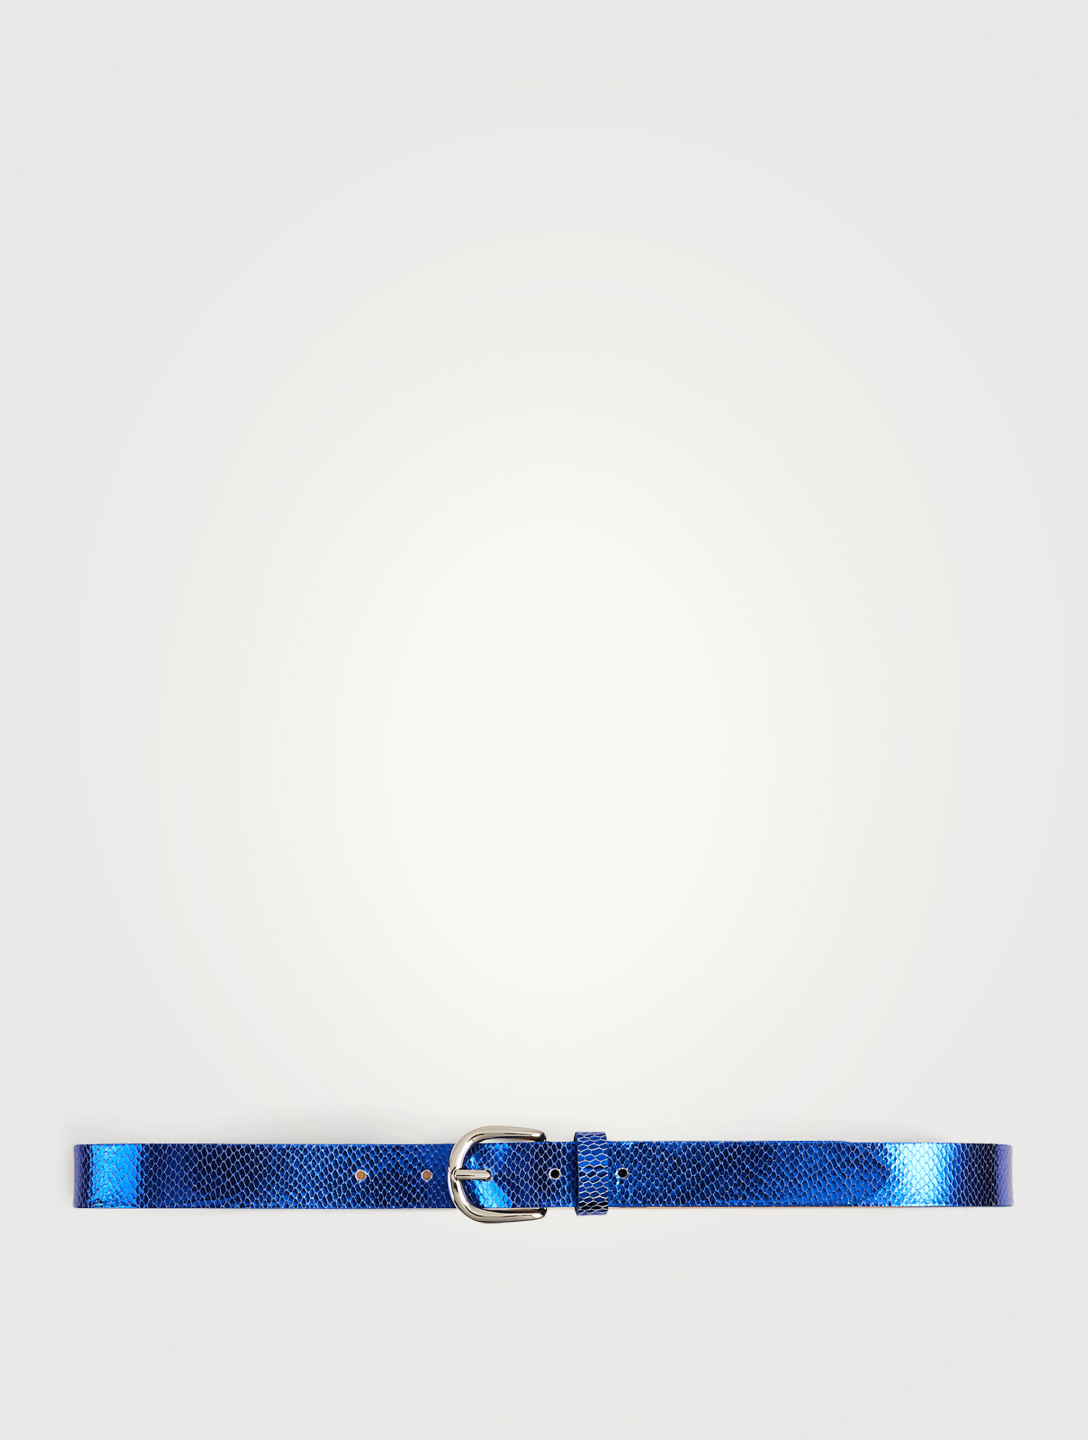 ISABEL MARANT Zap Metallic Lizard-Embossed Leather Belt Women's Blue